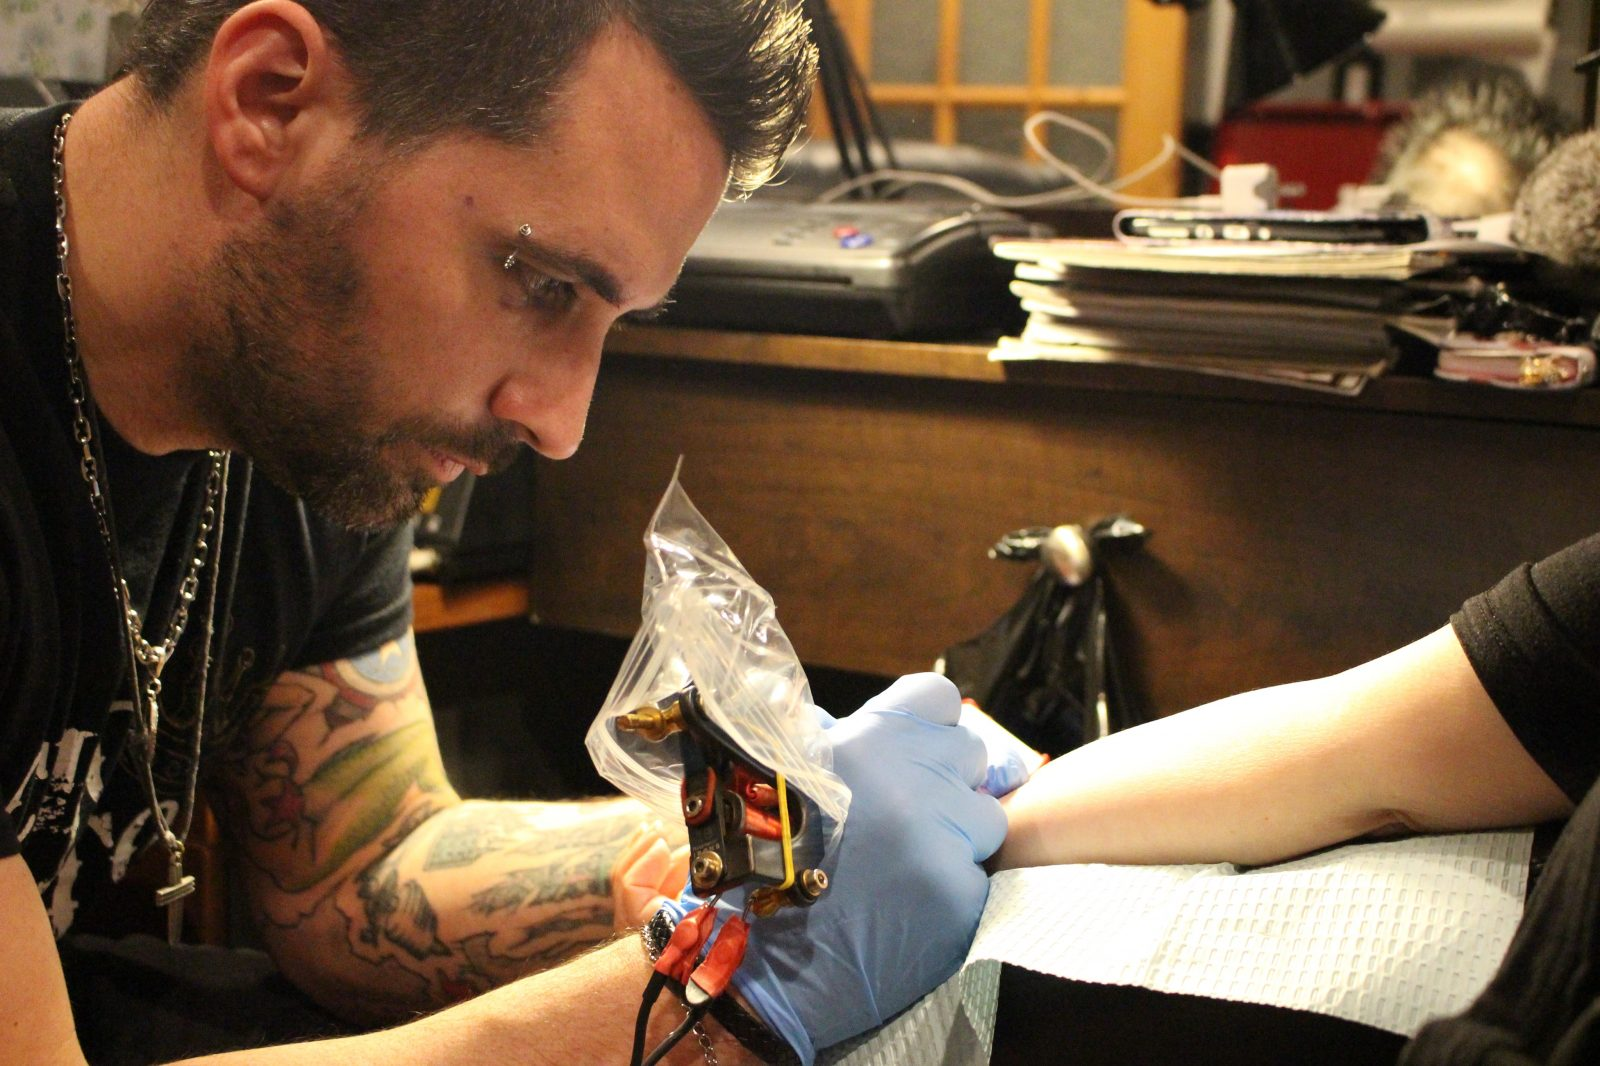 Chic Tattoo lance une formation en tatouage